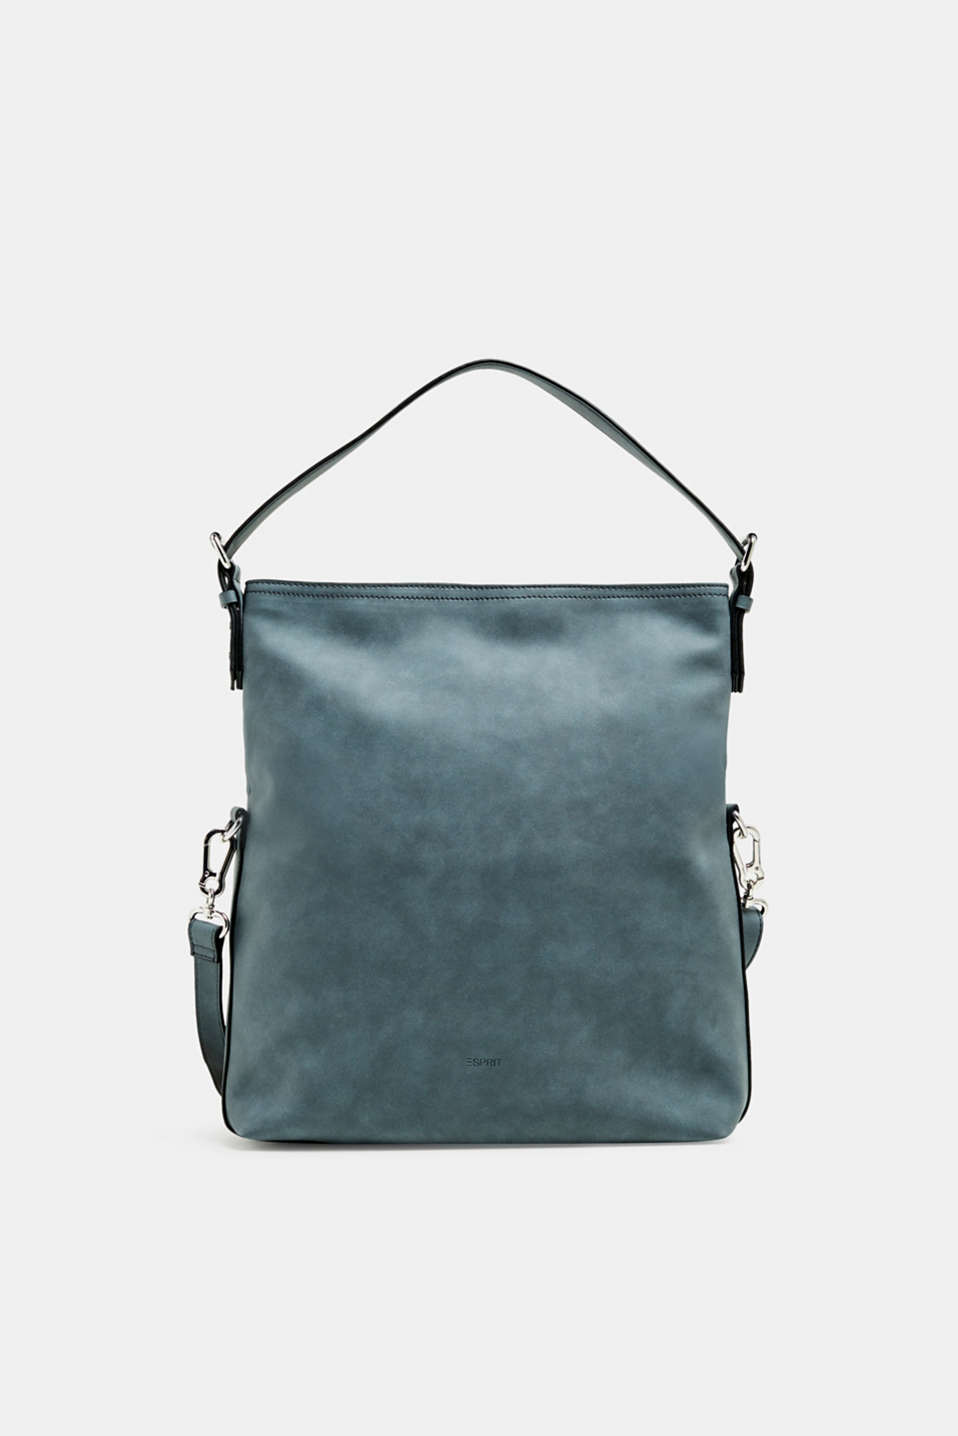 Esprit - Flap-over bag in faux nubuck leather